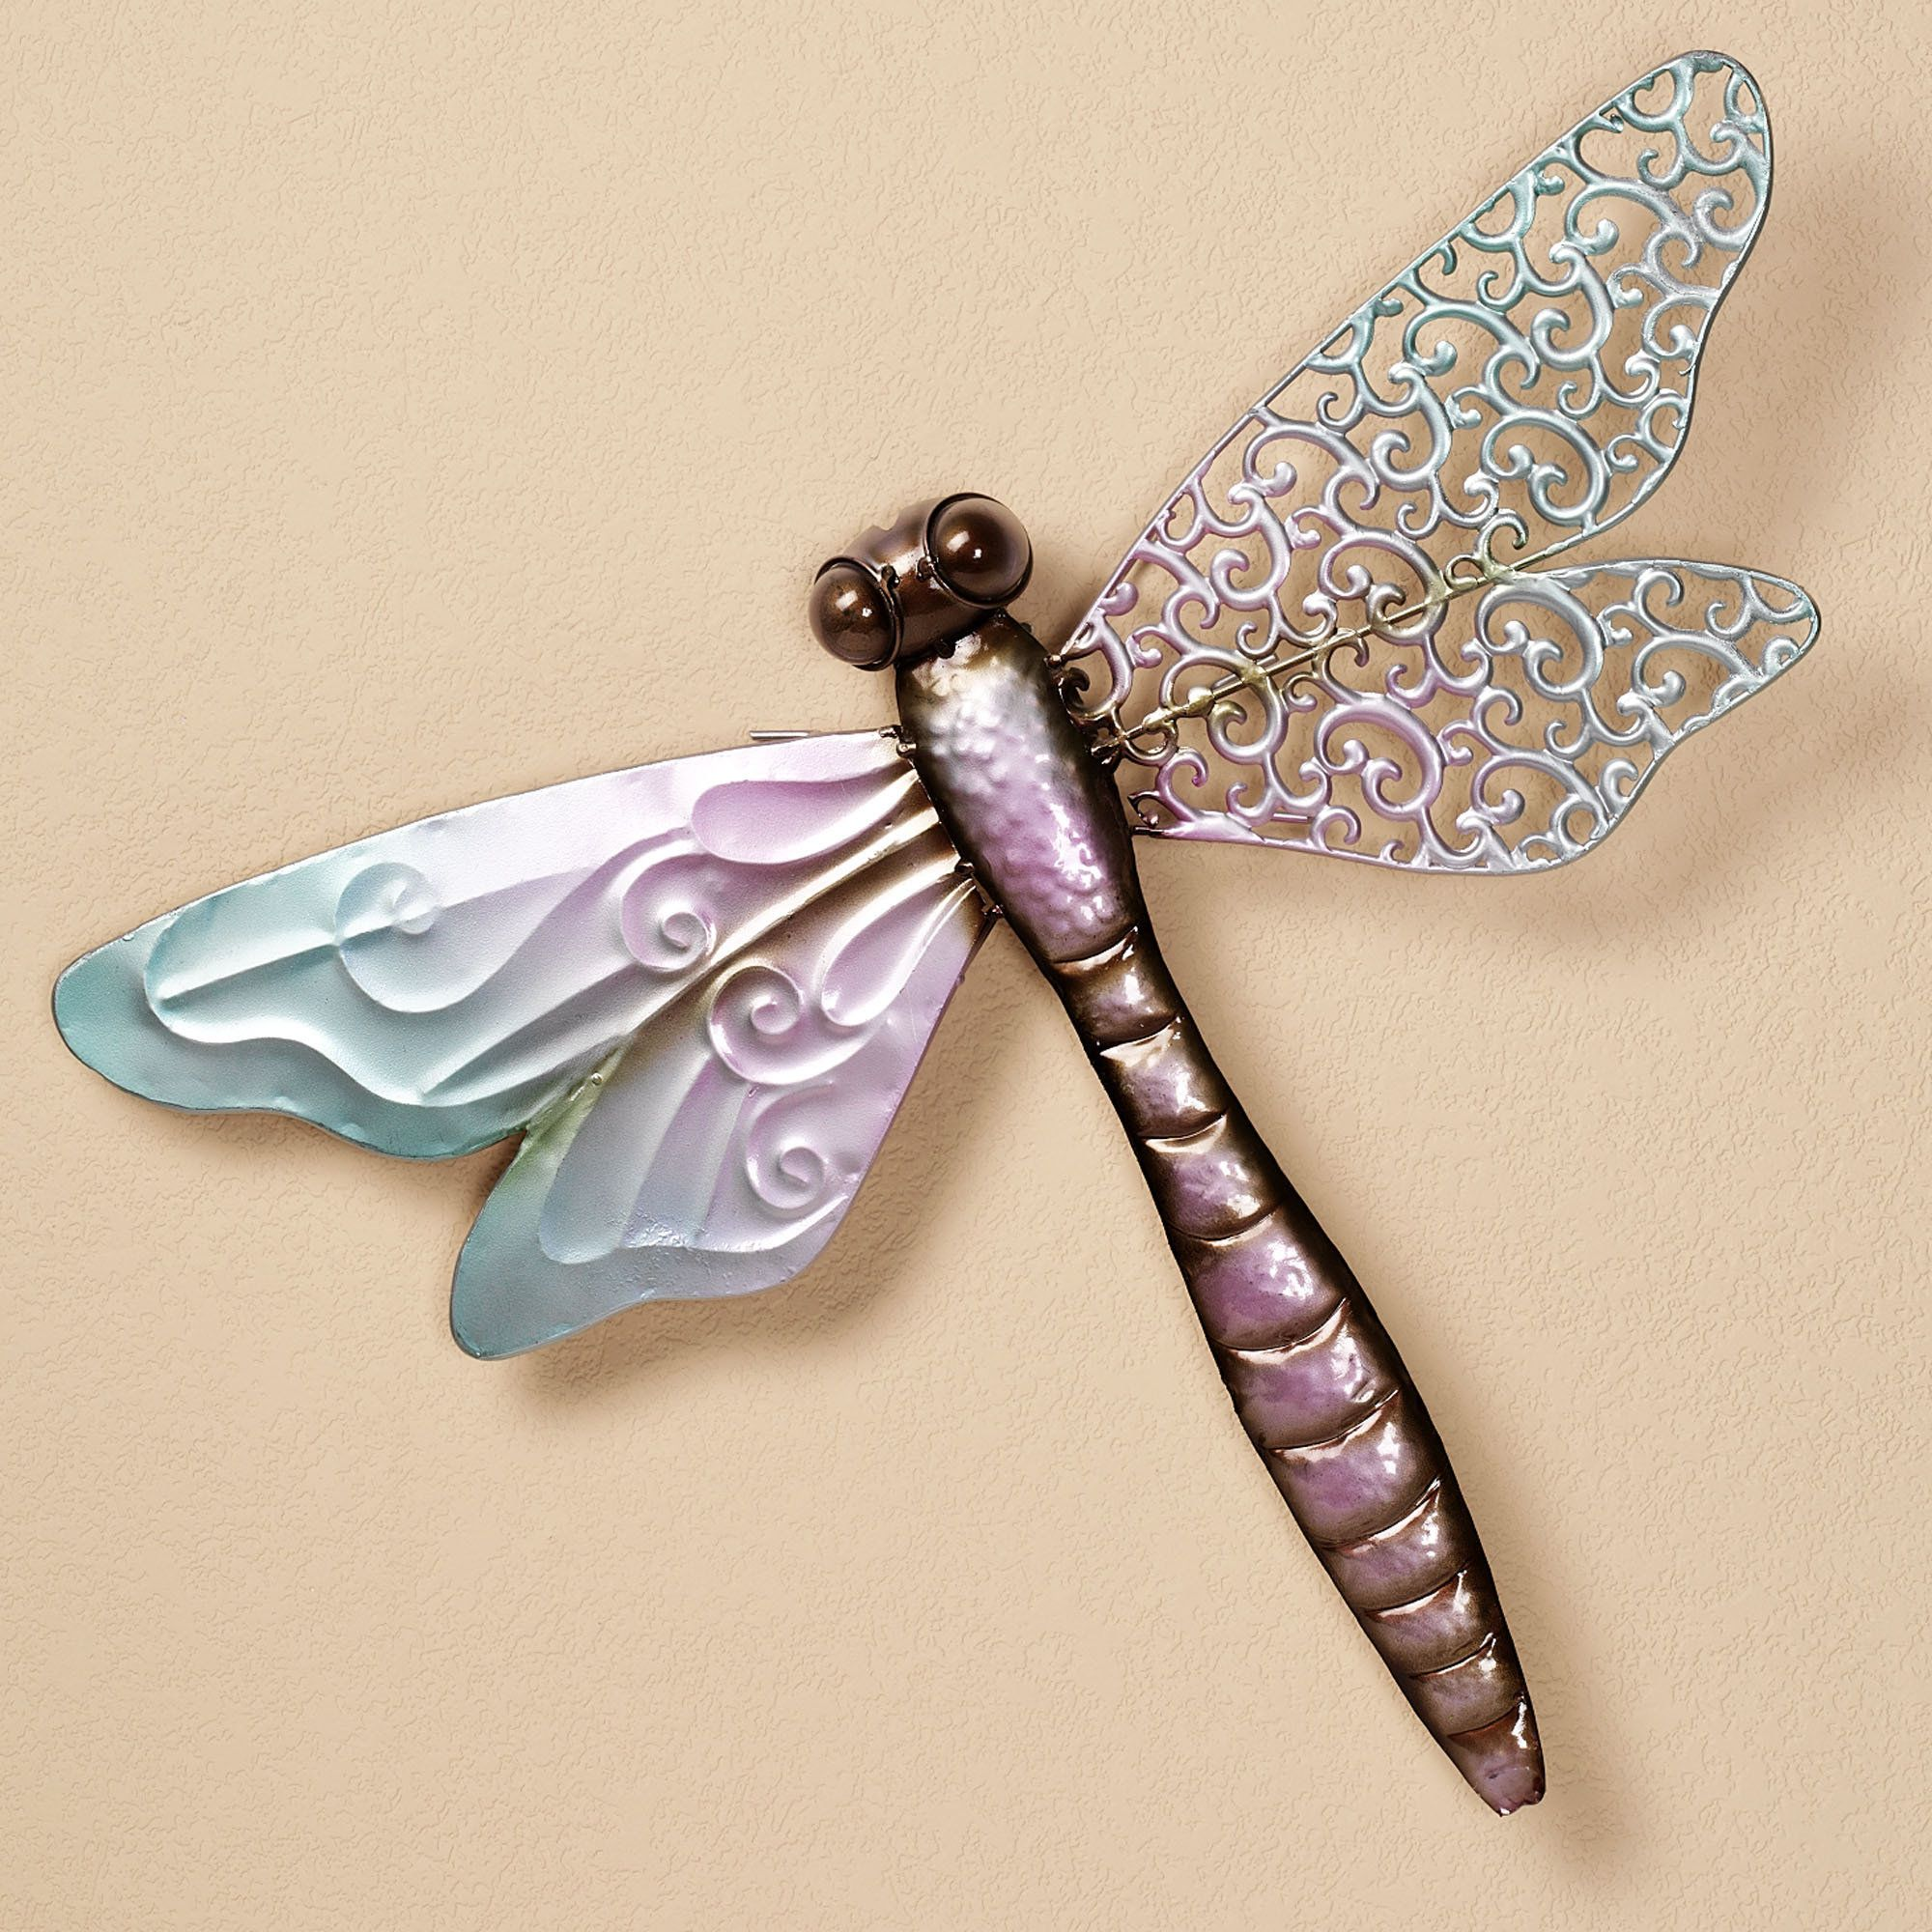 Dragonfly Art Home Scrolling Wing Wall Multi Pastel